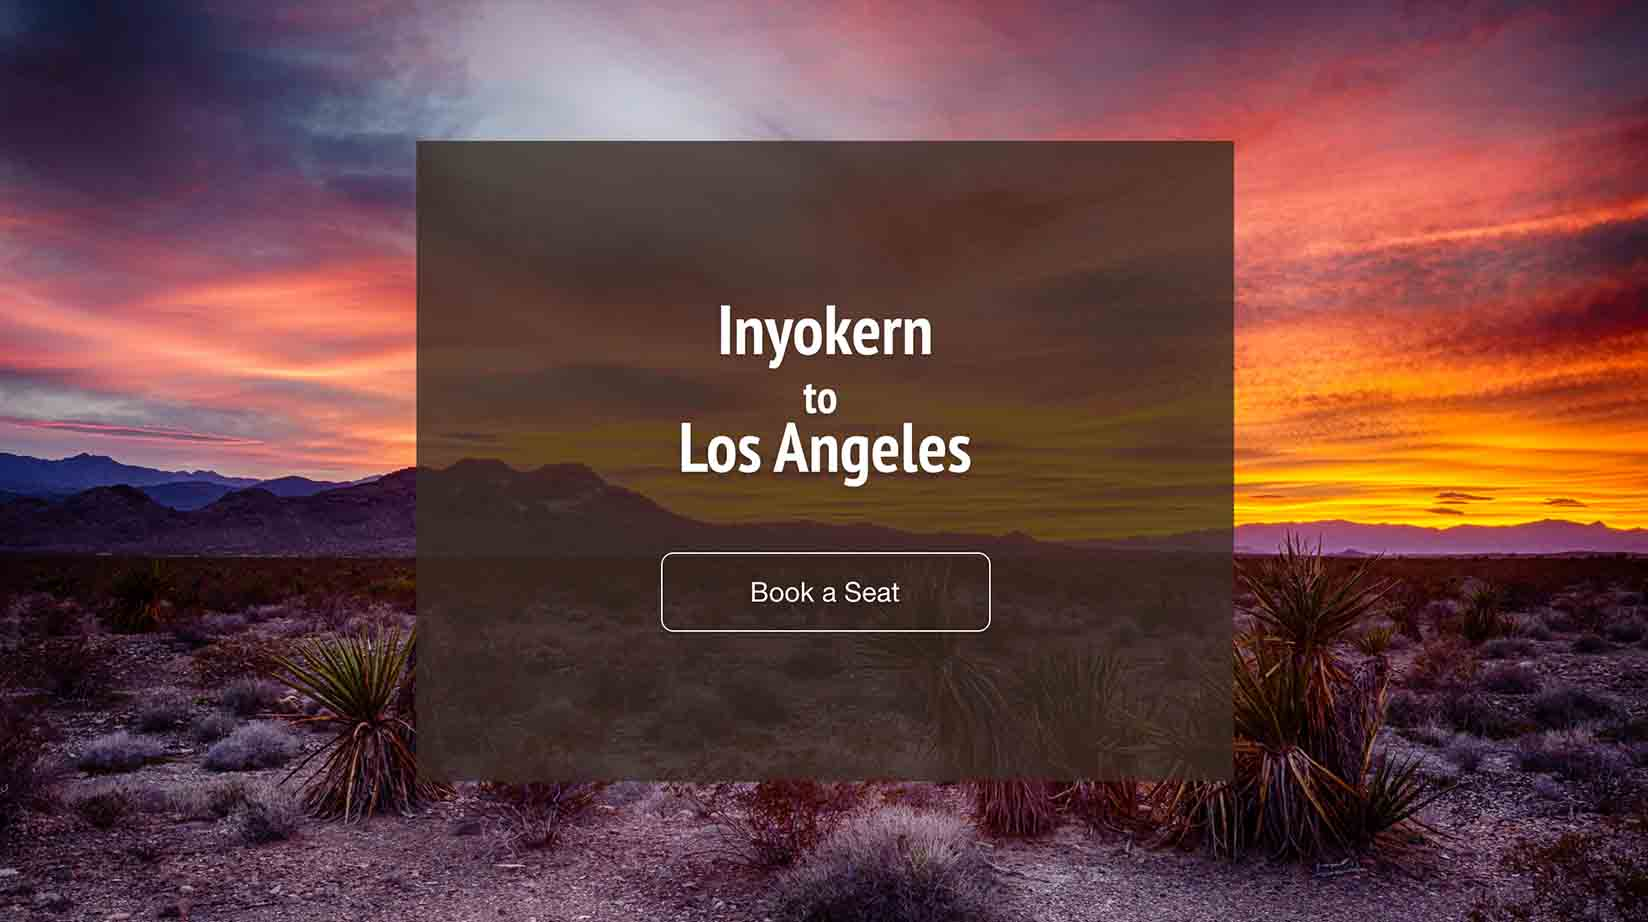 Inyokern (IYK) to Los Angeles (LAX)